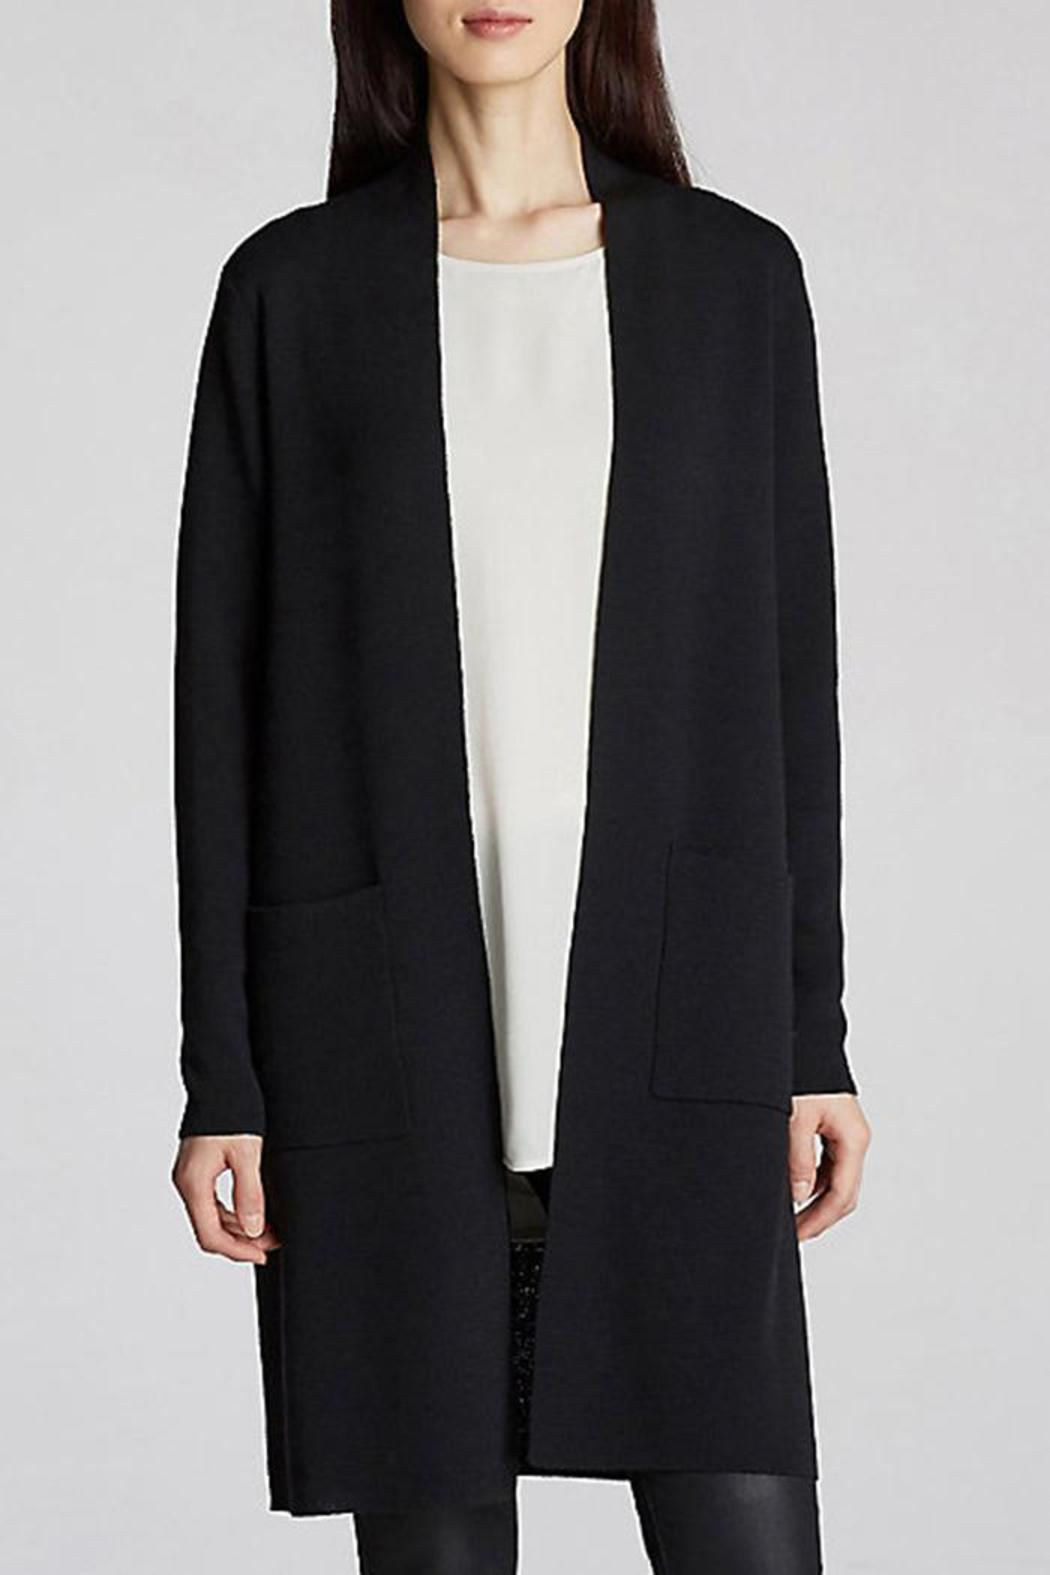 Eileen Fisher Kimono Long Cardigan from District of Columbia by ...